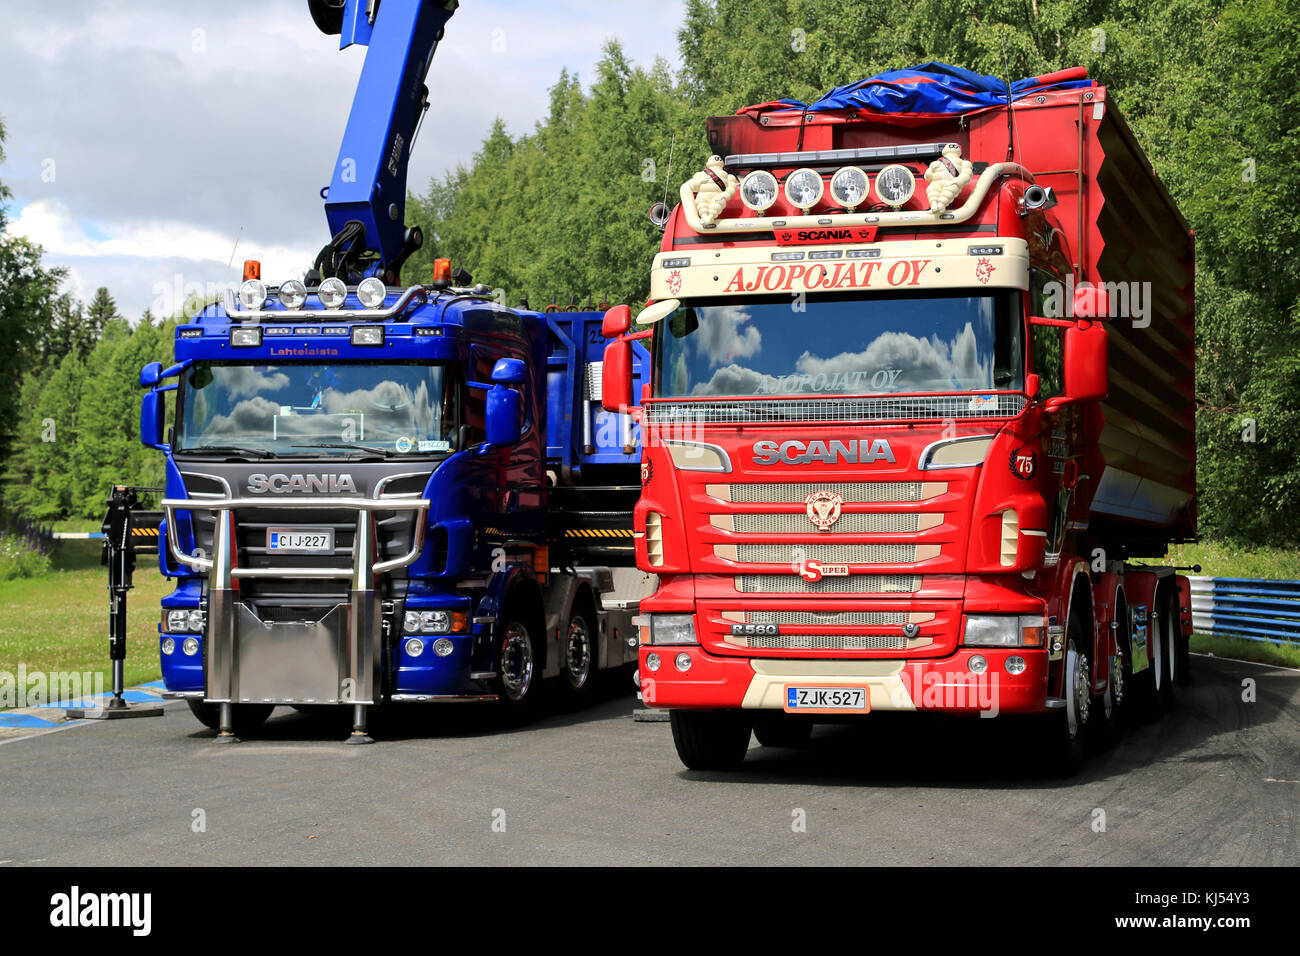 HAMEENLINNA, FINLAND - JULY 11, 2015: Red R560 and blue Scania trucks at Tawastia Truck Weekend 2015. Stock Photo